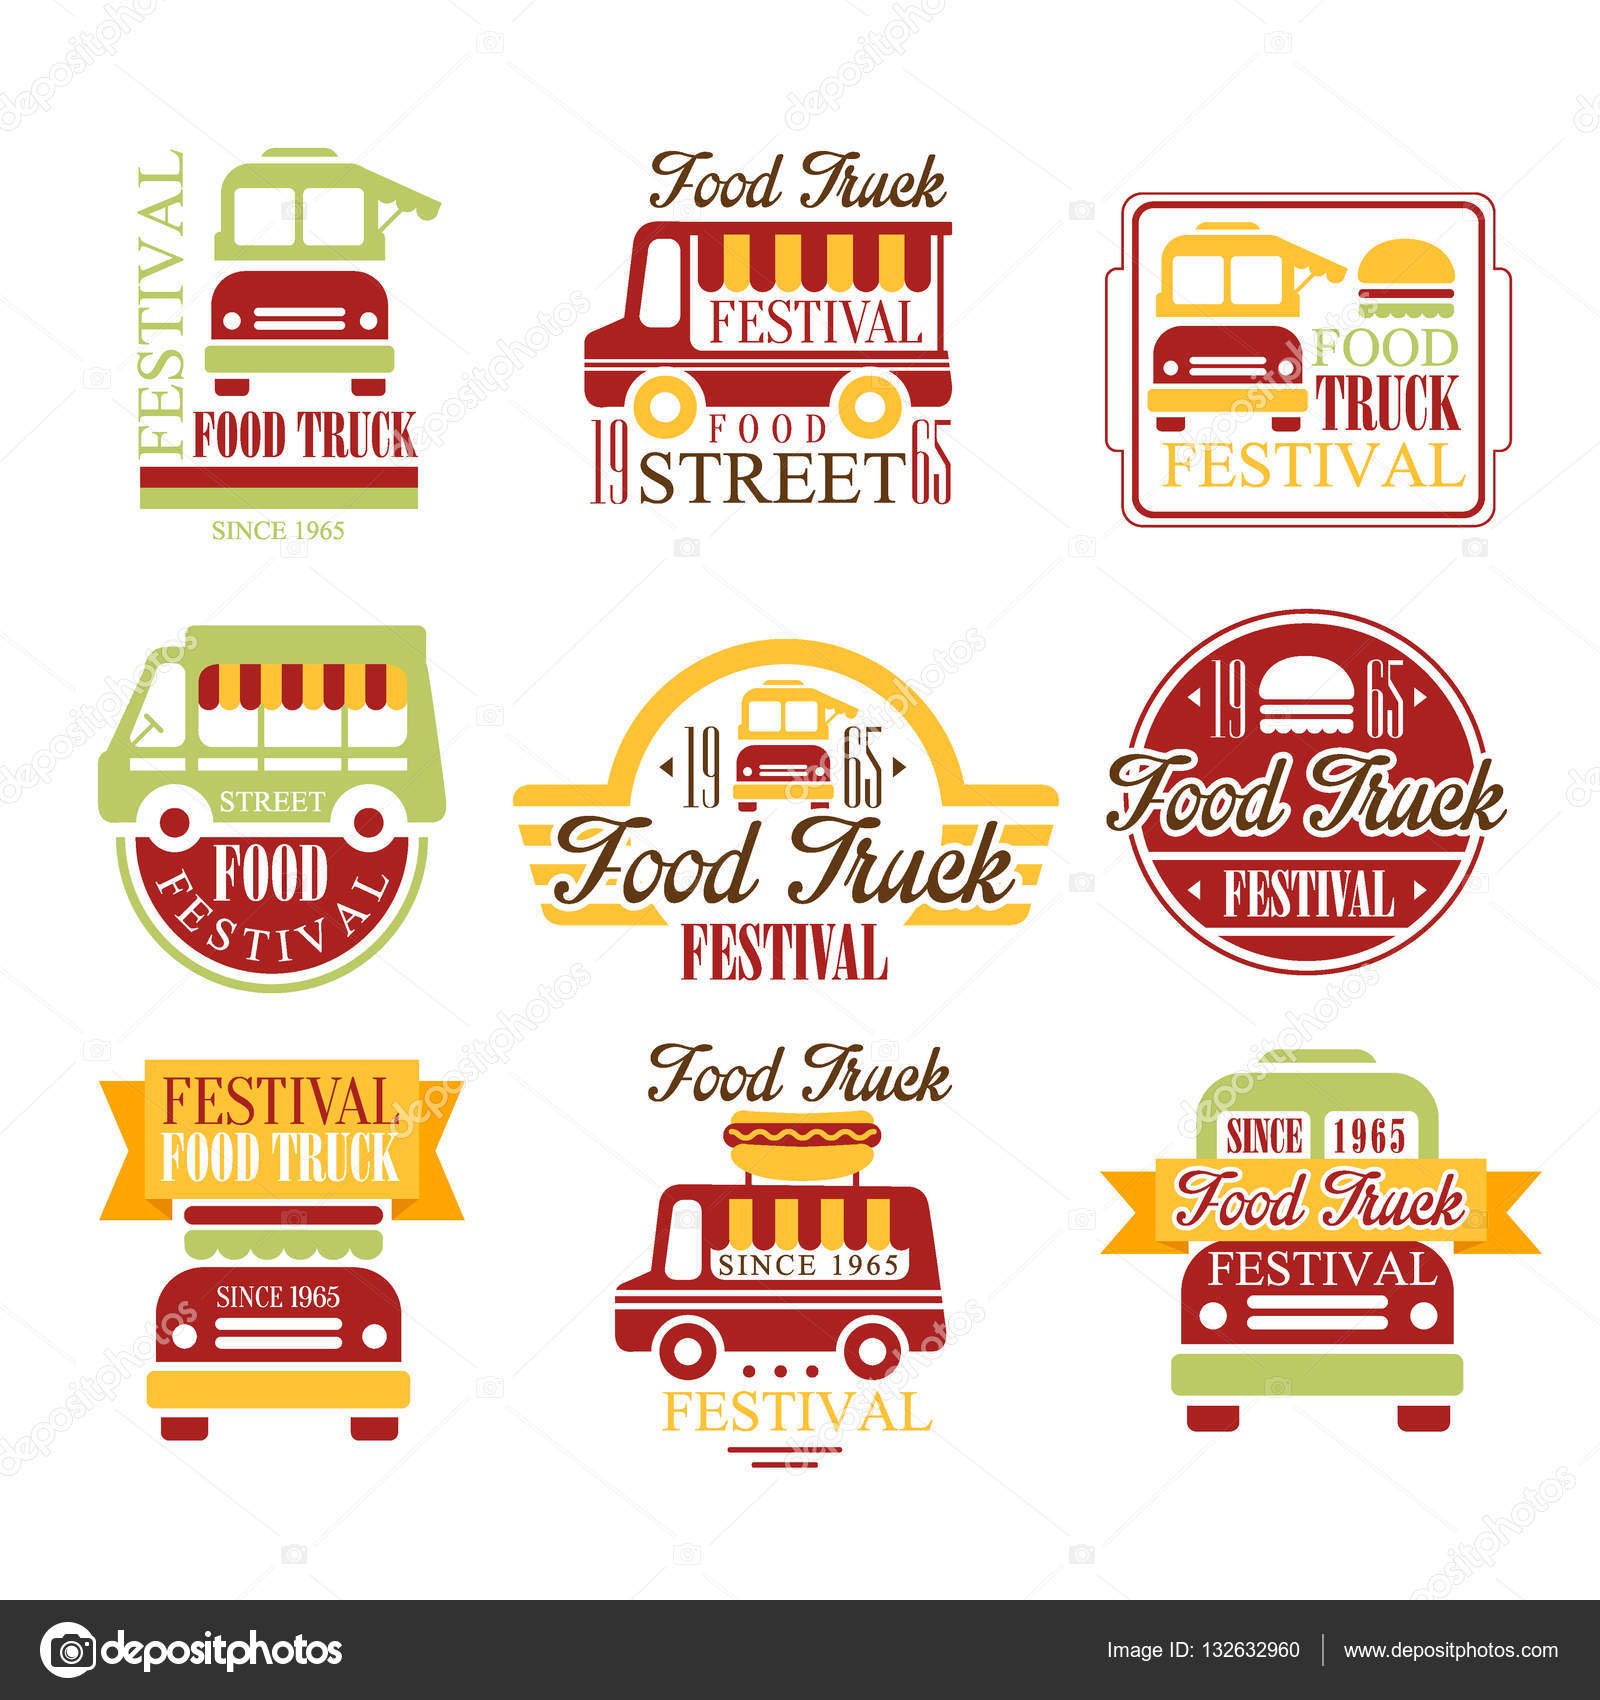 Food Truck Cafe Street Food Promo Signs Set Of Colorful Vector